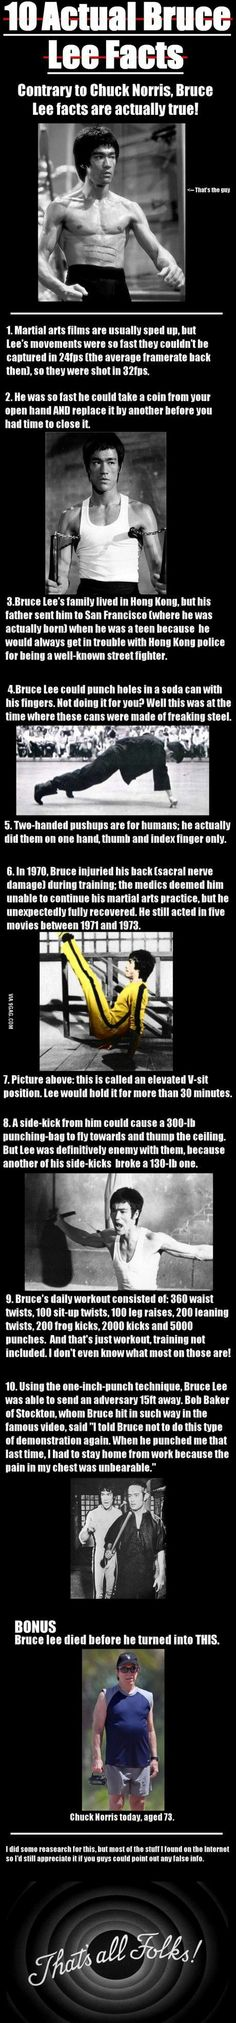 Some interesting facts about Bruce Lee